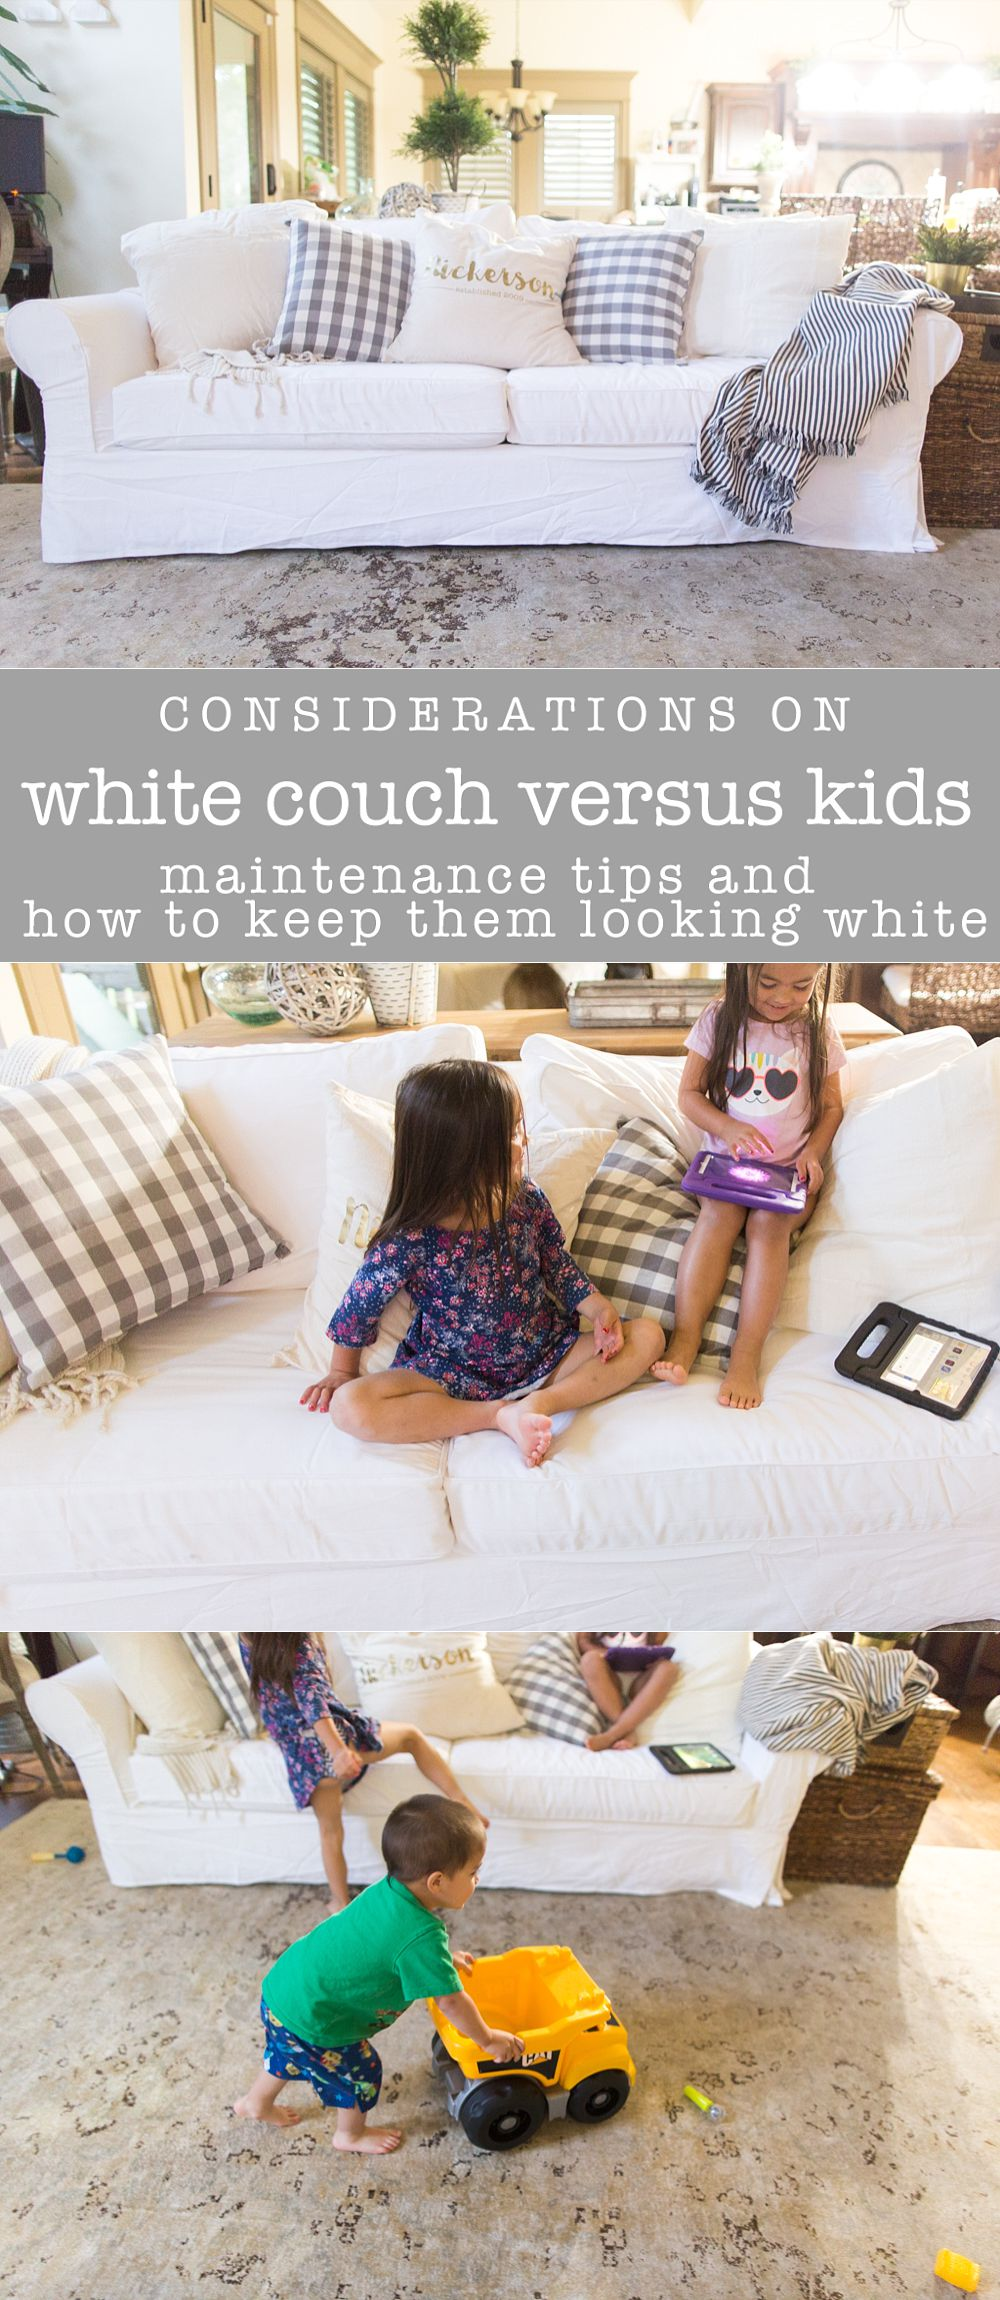 How to choose whether or not to get a white sofa (slipcovered sofa) for kids. #sofa #whitesofa #clean #whitecouch